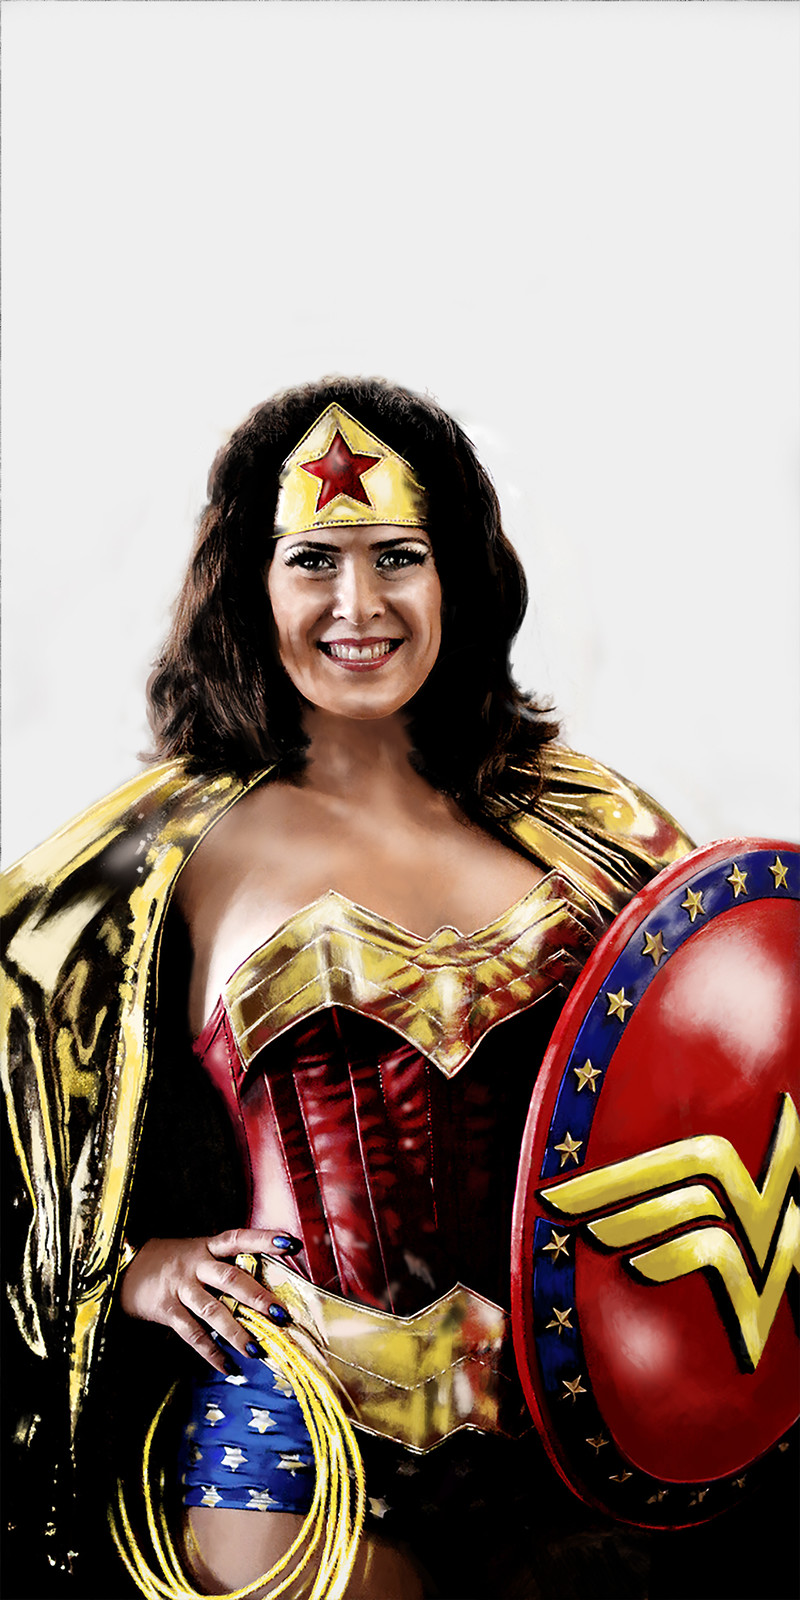 Wonder Woman portrait series using my favorite model.